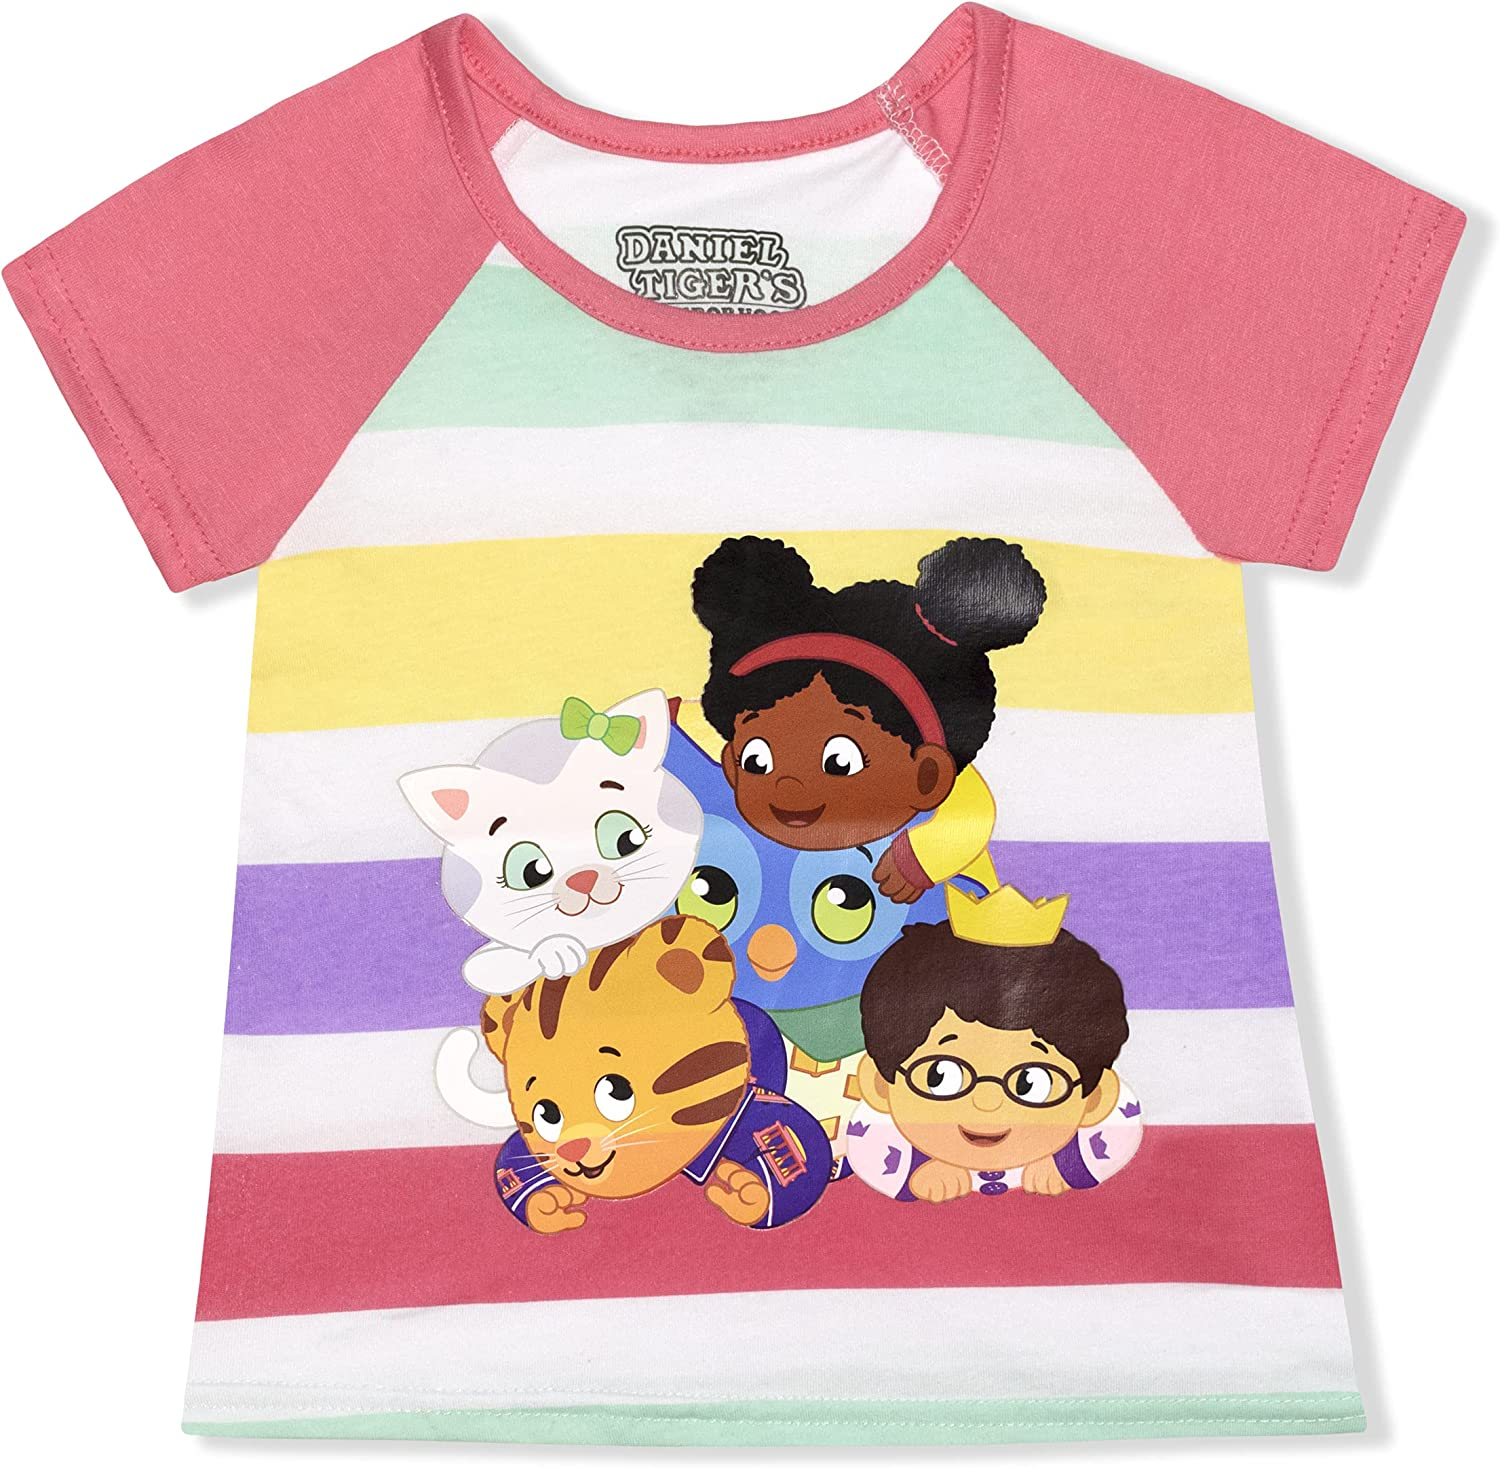 Daniel Tiger Girl's Short Sleeves Tee Shirt for Kids, Loose Fit Top, Pink Stripes, Size 2T